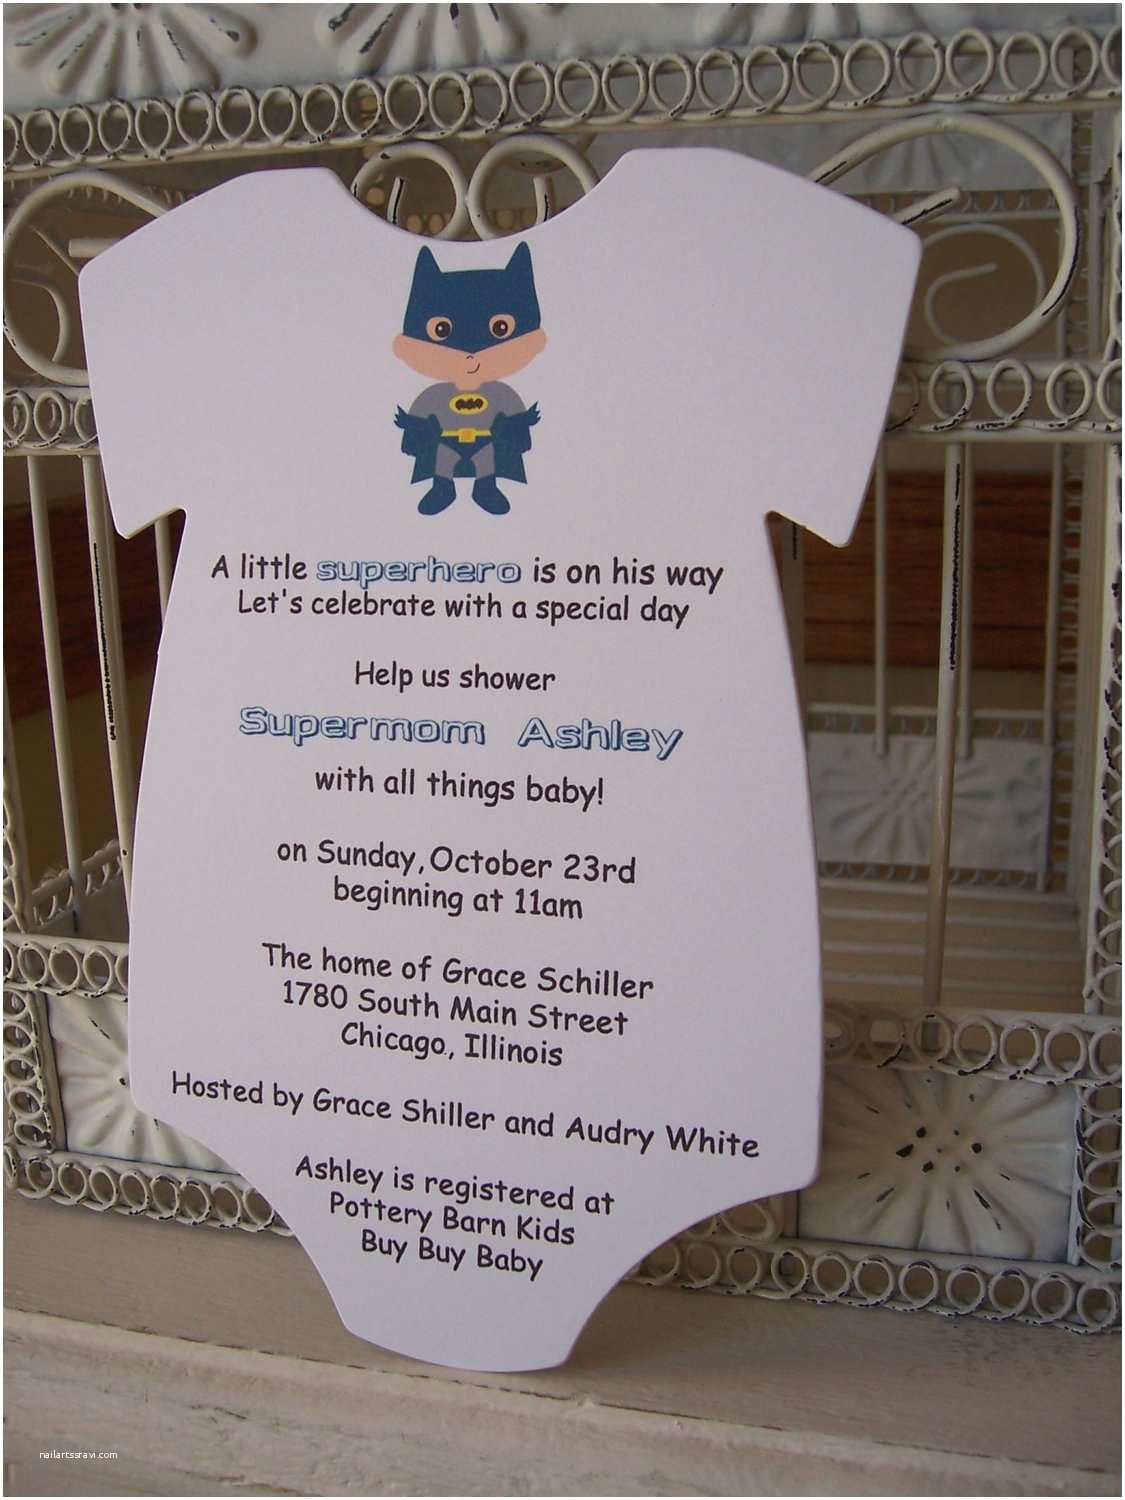 Superhero Baby Shower Invitations Superhero Baby Shower Invitation Custom Die Cut